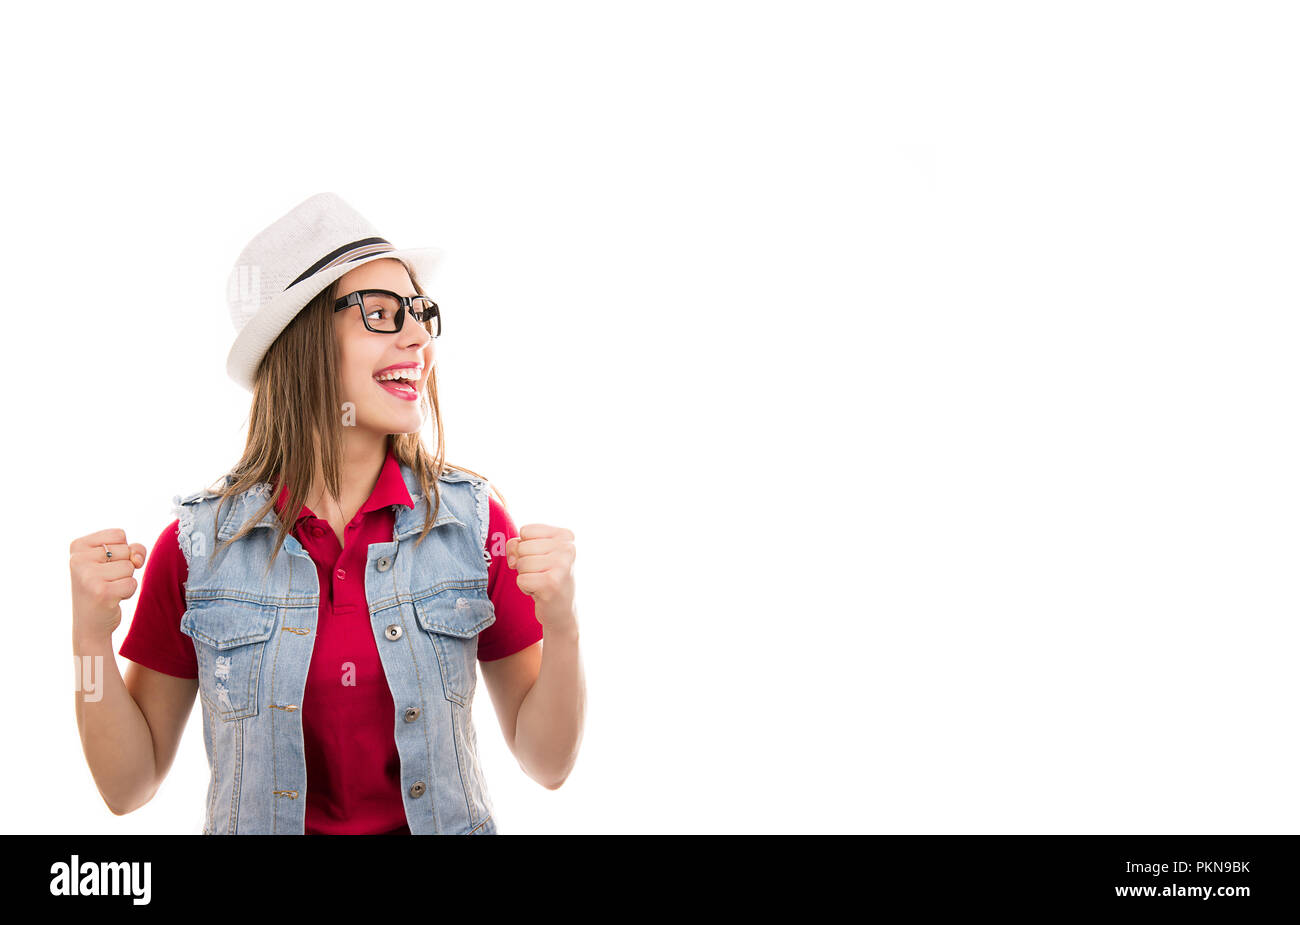 fae9bc7346af Casual young woman in hat and glasses with fists up screaming feeling  excited looking super thrilled